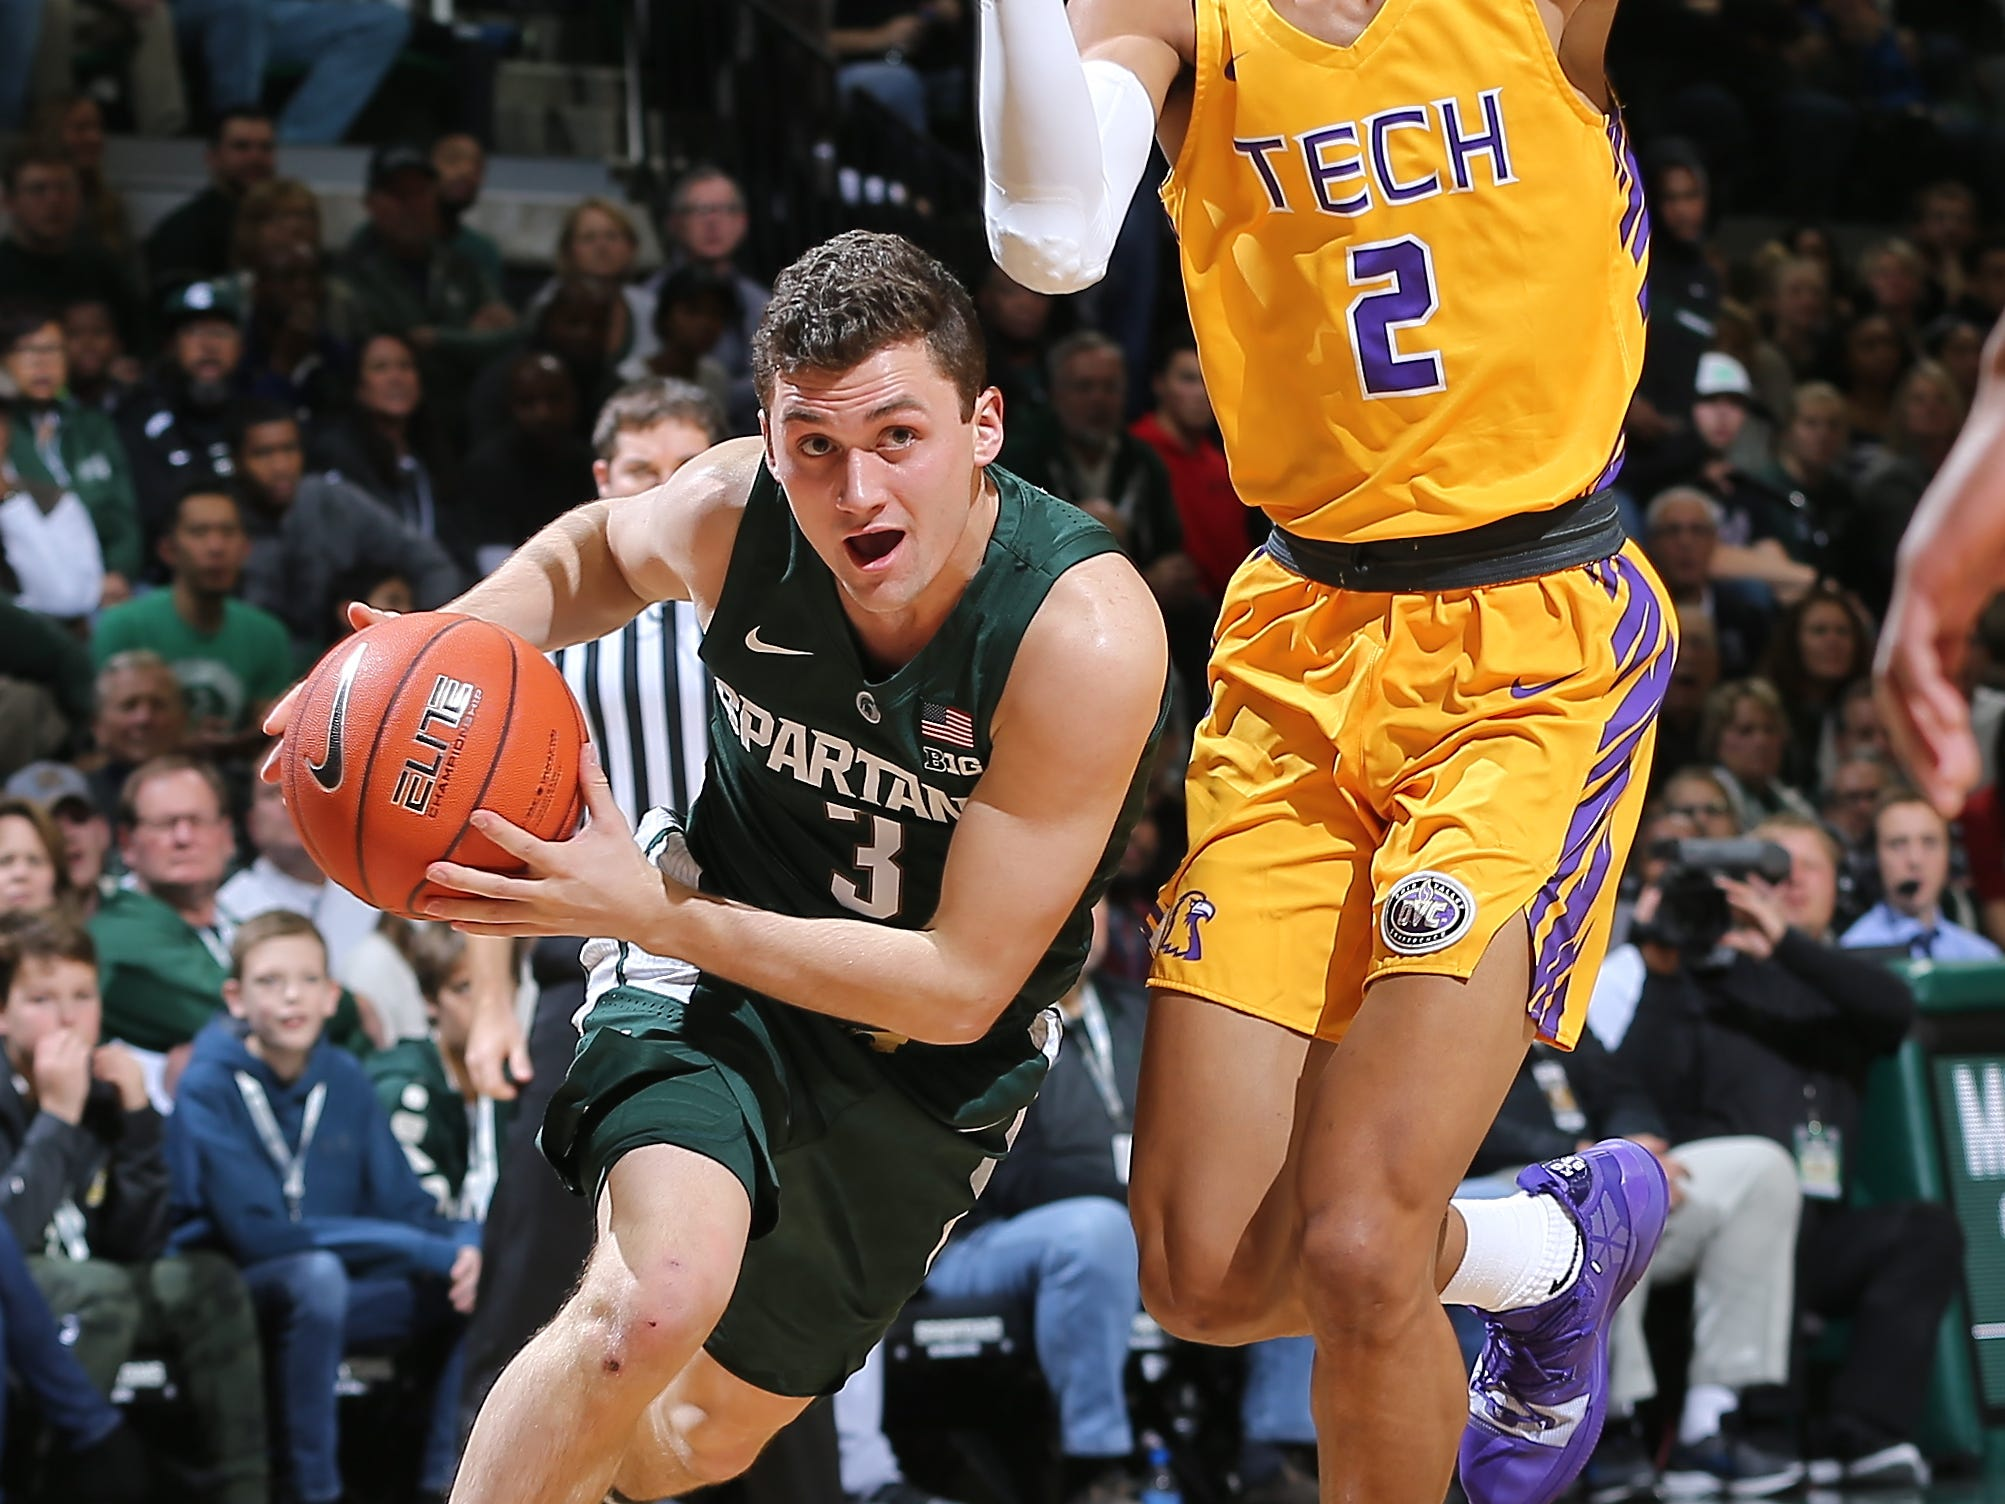 Michigan State's Foster Loyer drives to the basket against Jared Sherfield of Tennessee Tech in the first half at Breslin Center on Nov. 18, 2018 in East Lansing.